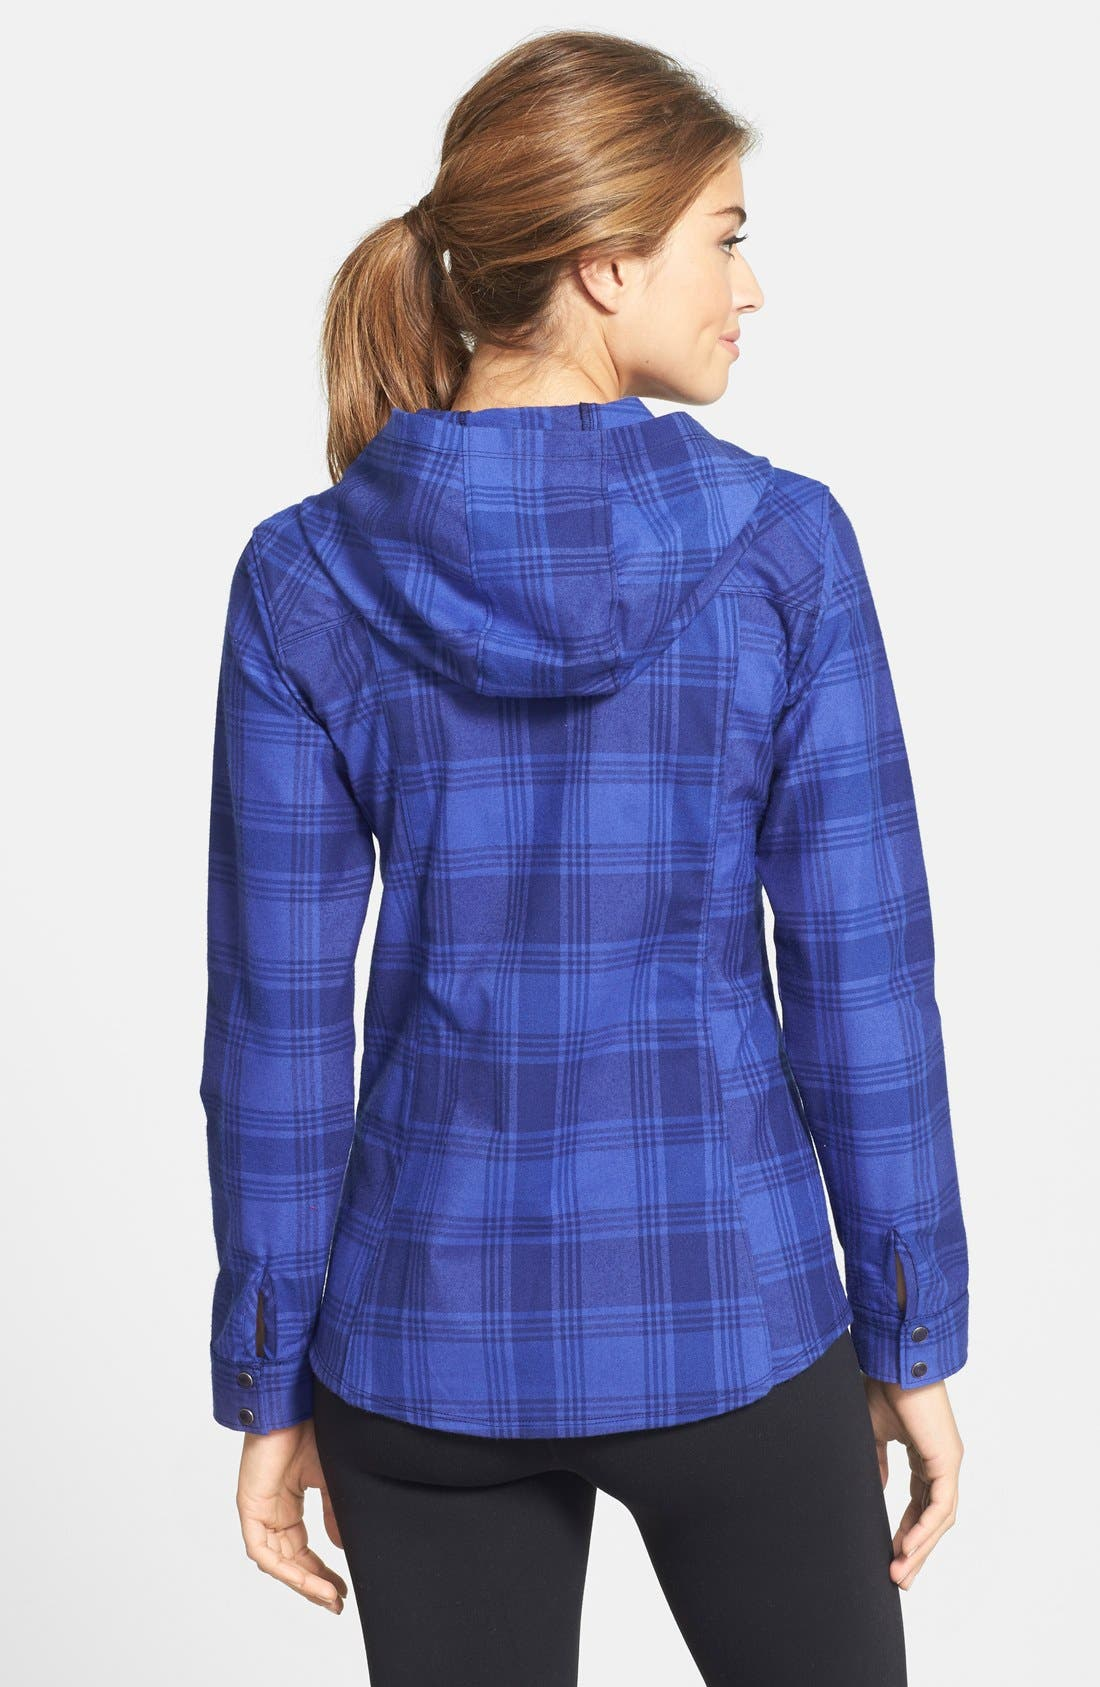 MOUNTAIN HARDWEAR,                             'Stretchstone Flannel<sup>™</sup>' Hooded Shirt,                             Alternate thumbnail 2, color,                             401